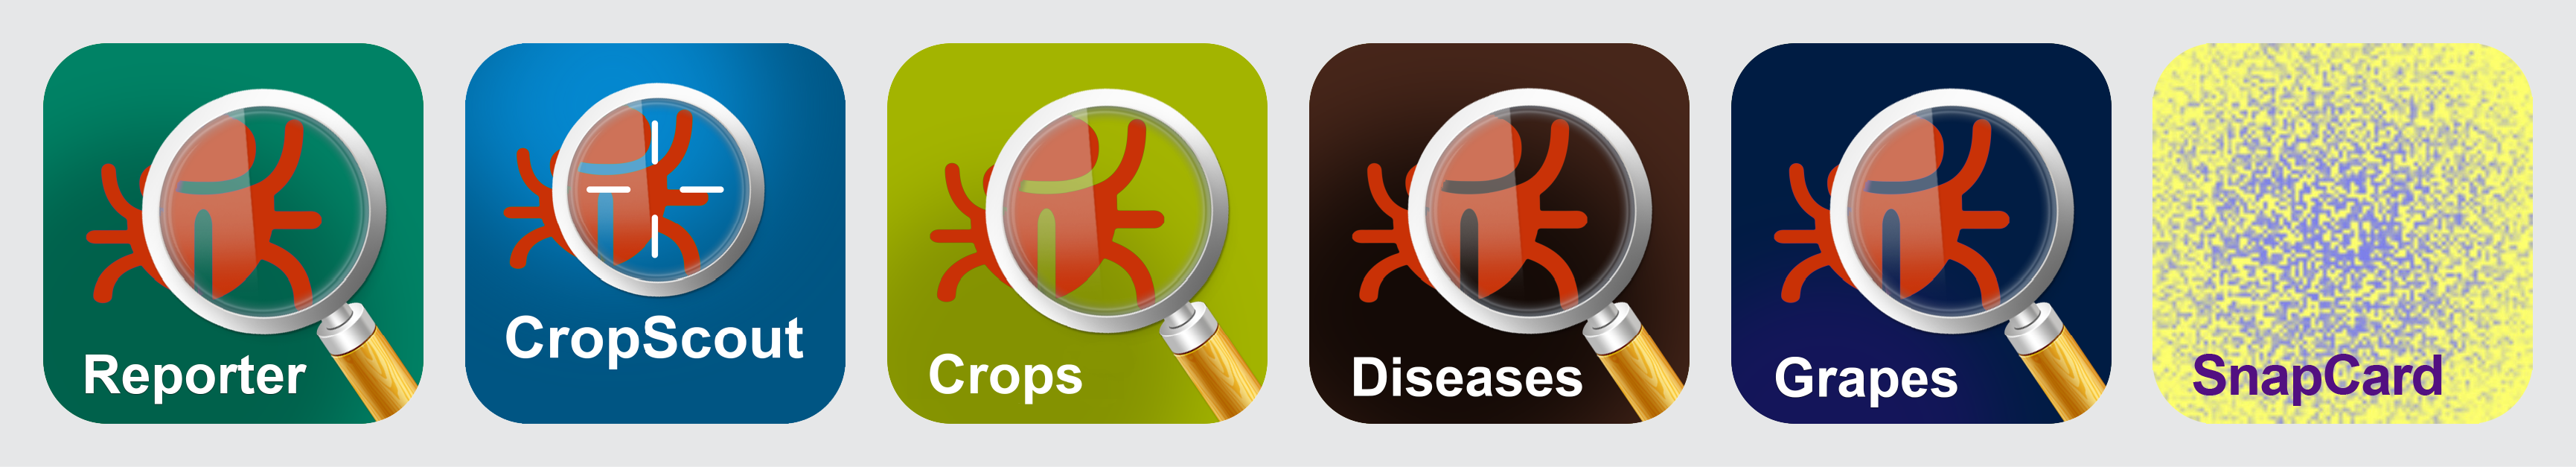 MyPestGuide family of apps